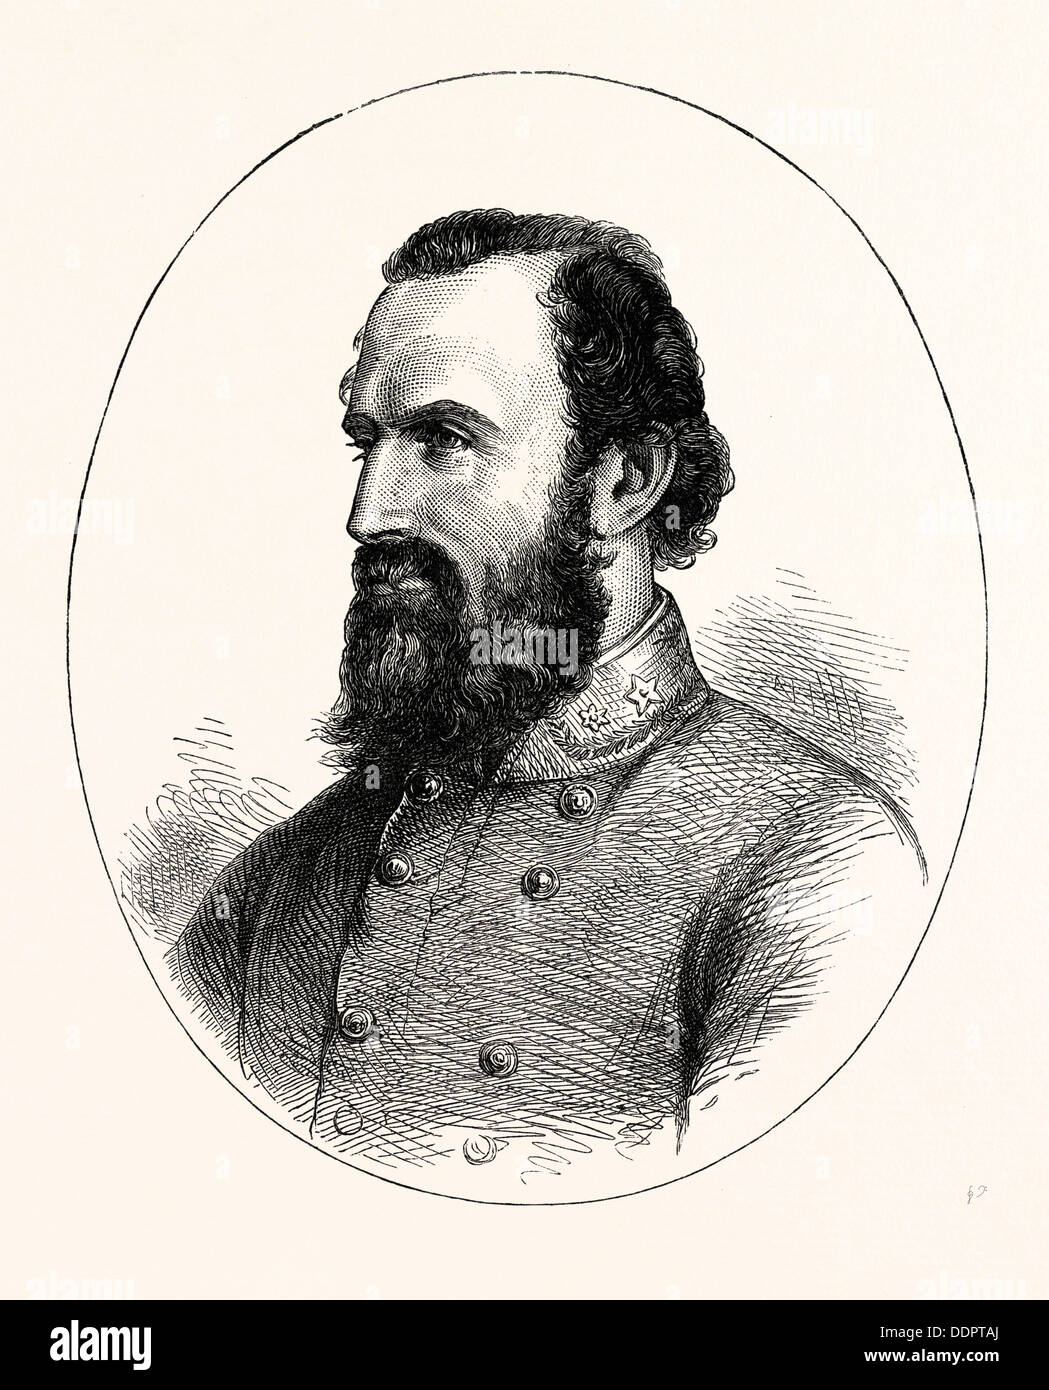 STONEWALL JACKSON, AMERICAN CIVIL WAR, UNITED STATES OF AMERICA, US, USA, 1870s engraving - Stock Image